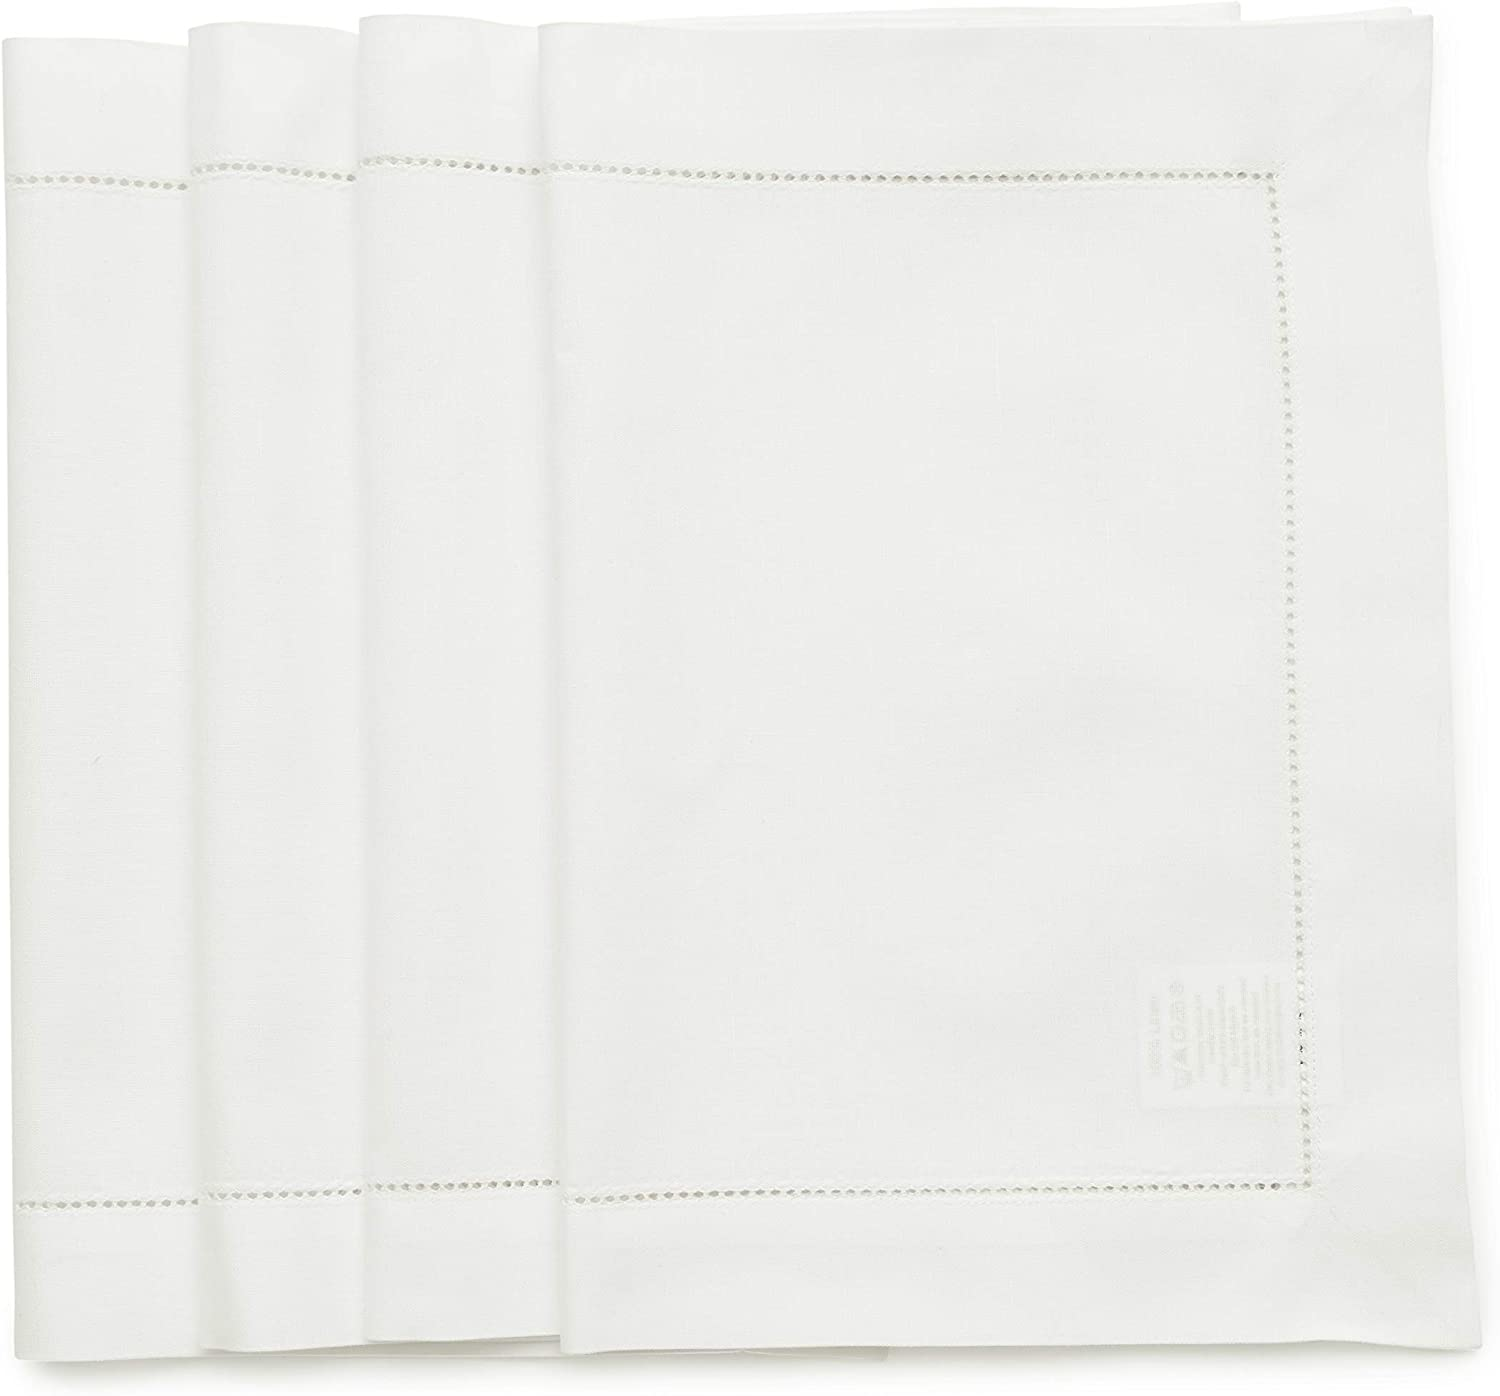 Solino Home Hemstitch Cotton Linen Placemats - 14 x 19 Inch, Set of 4 - Natural Fabric Machine Washable Placemats - Handcrafted with Mitered Corners - White